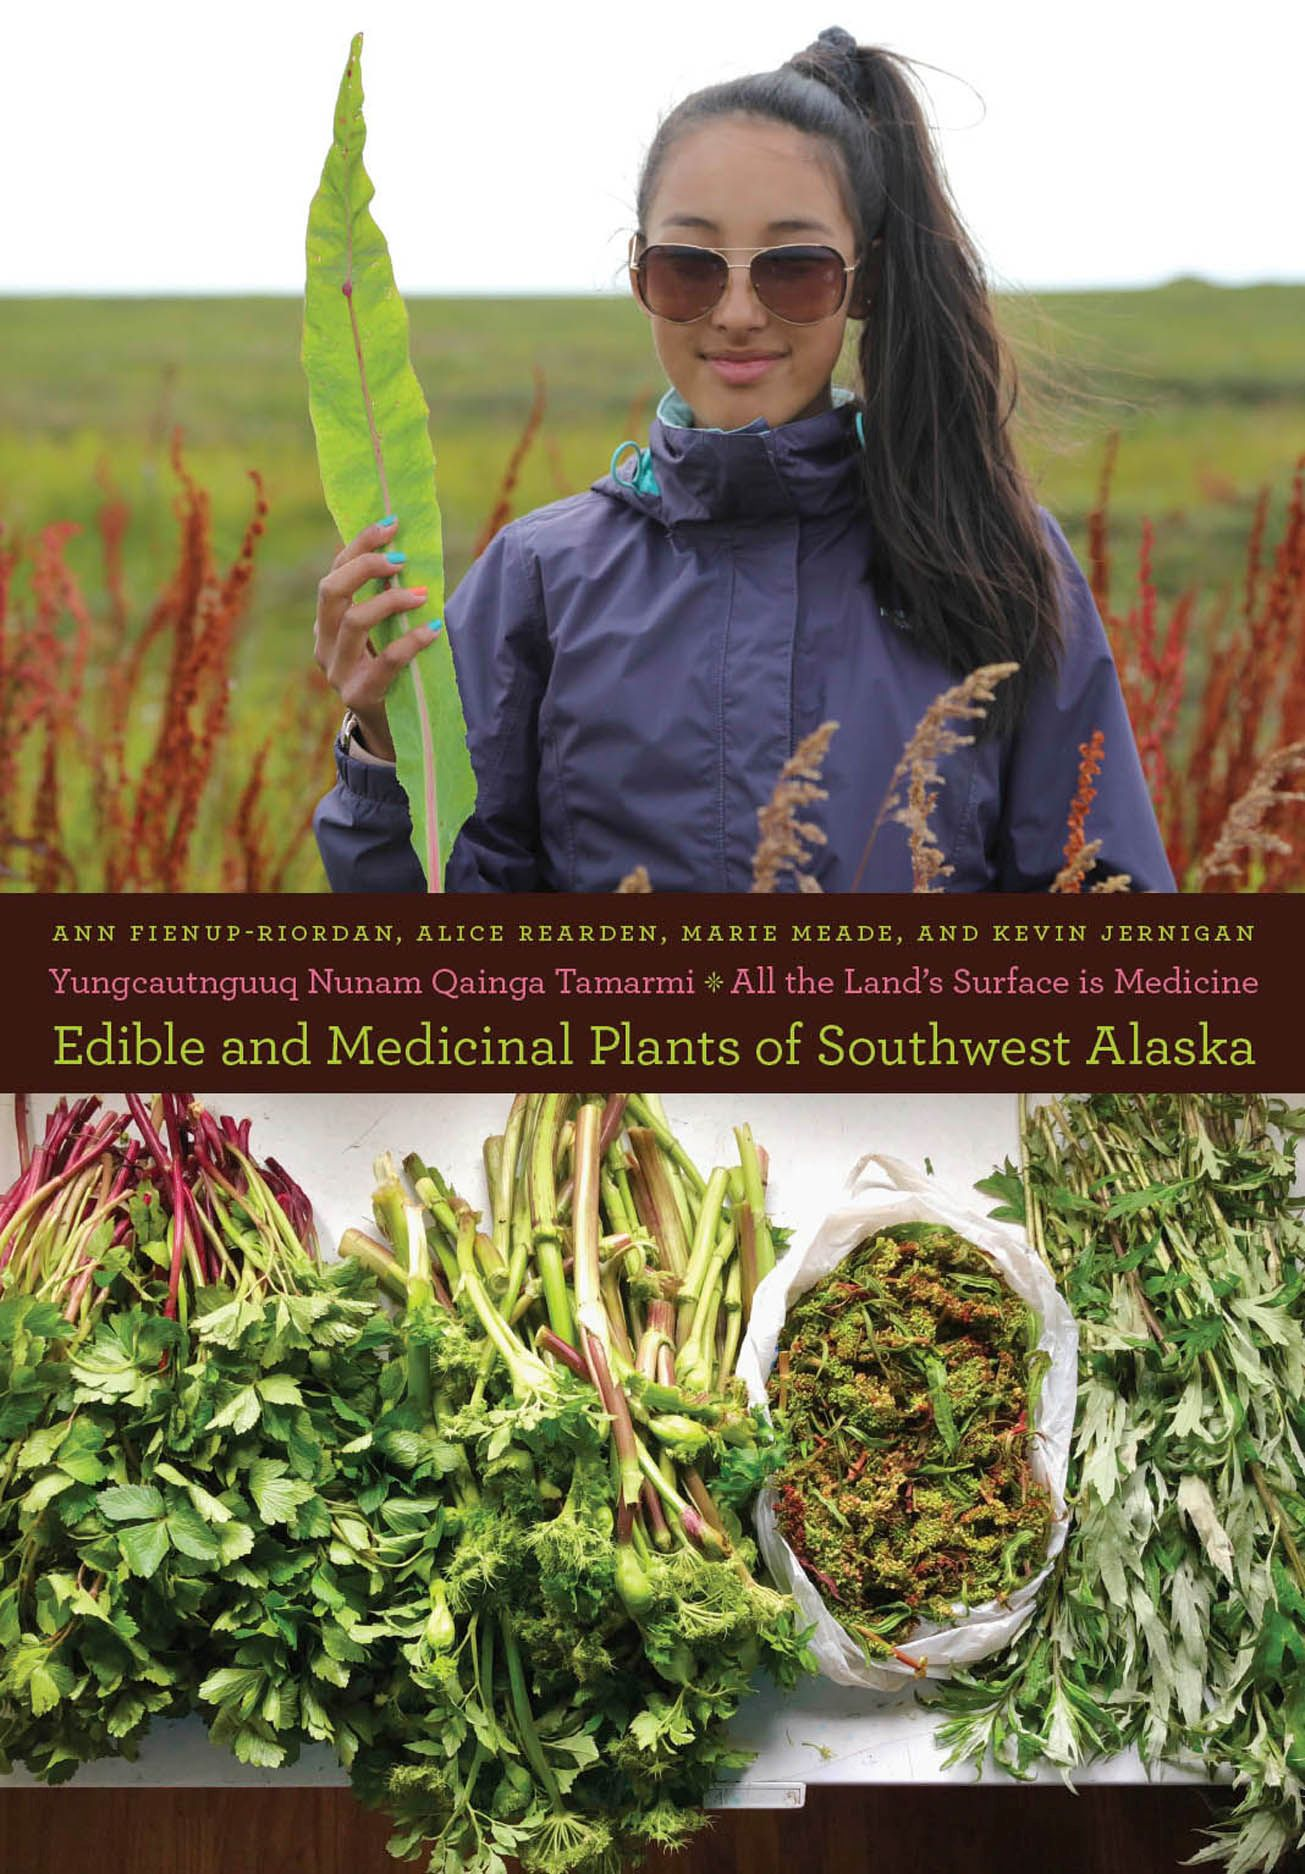 Yungcautnguuq Nunam Qainga Tamarmi/All the Land's Surface is Medicine: Edible and Medicinal Plants of Southwest Alaska